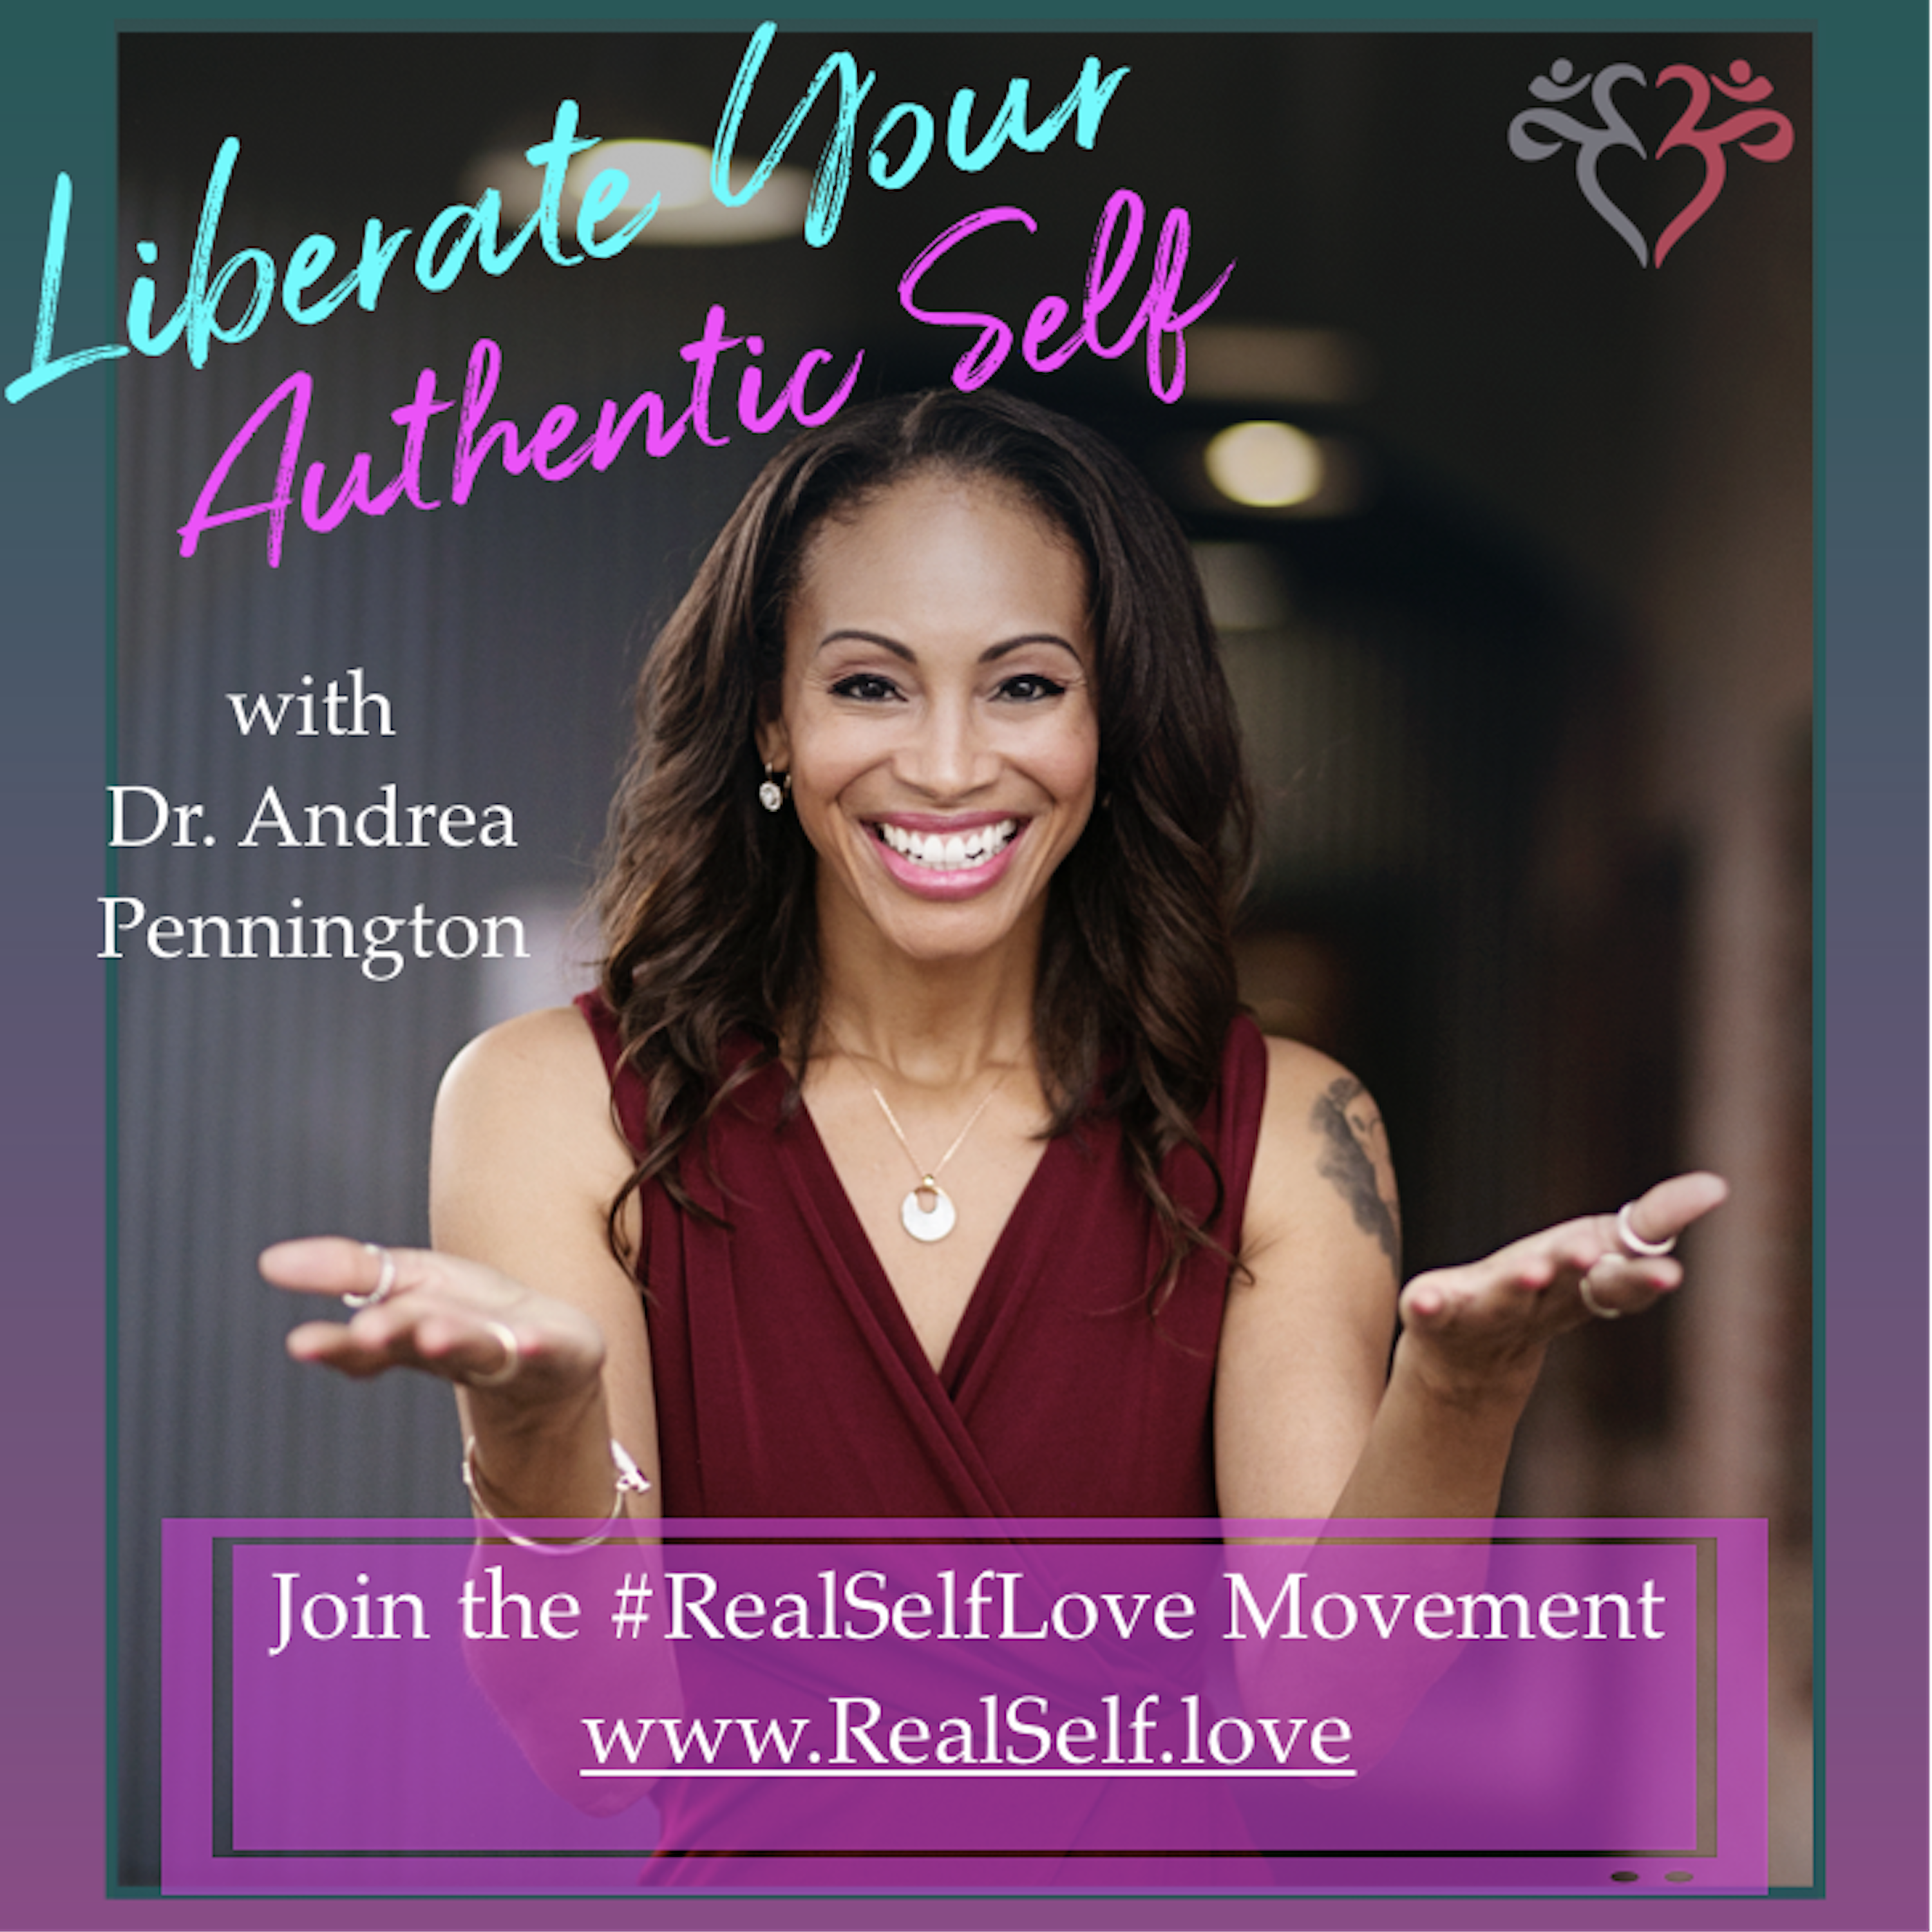 The Soul+Science+Psychology of Optimal Wellbeing by Dr Andrea Pennington